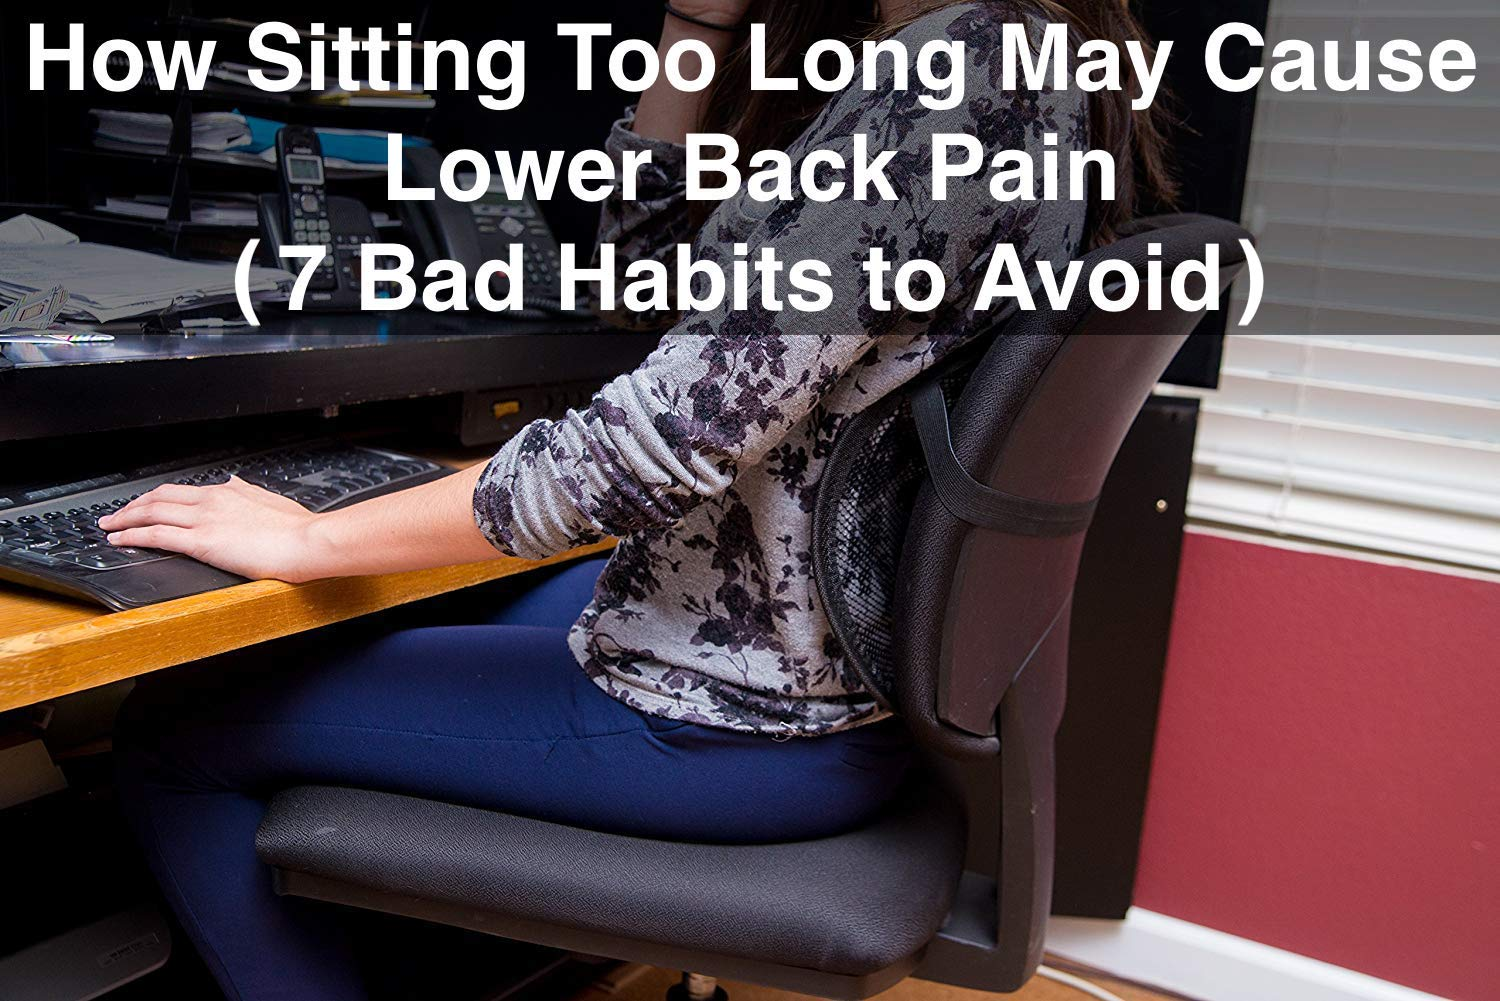 Lower Back Pain When Sitting Here Are 7 Bad Habits To